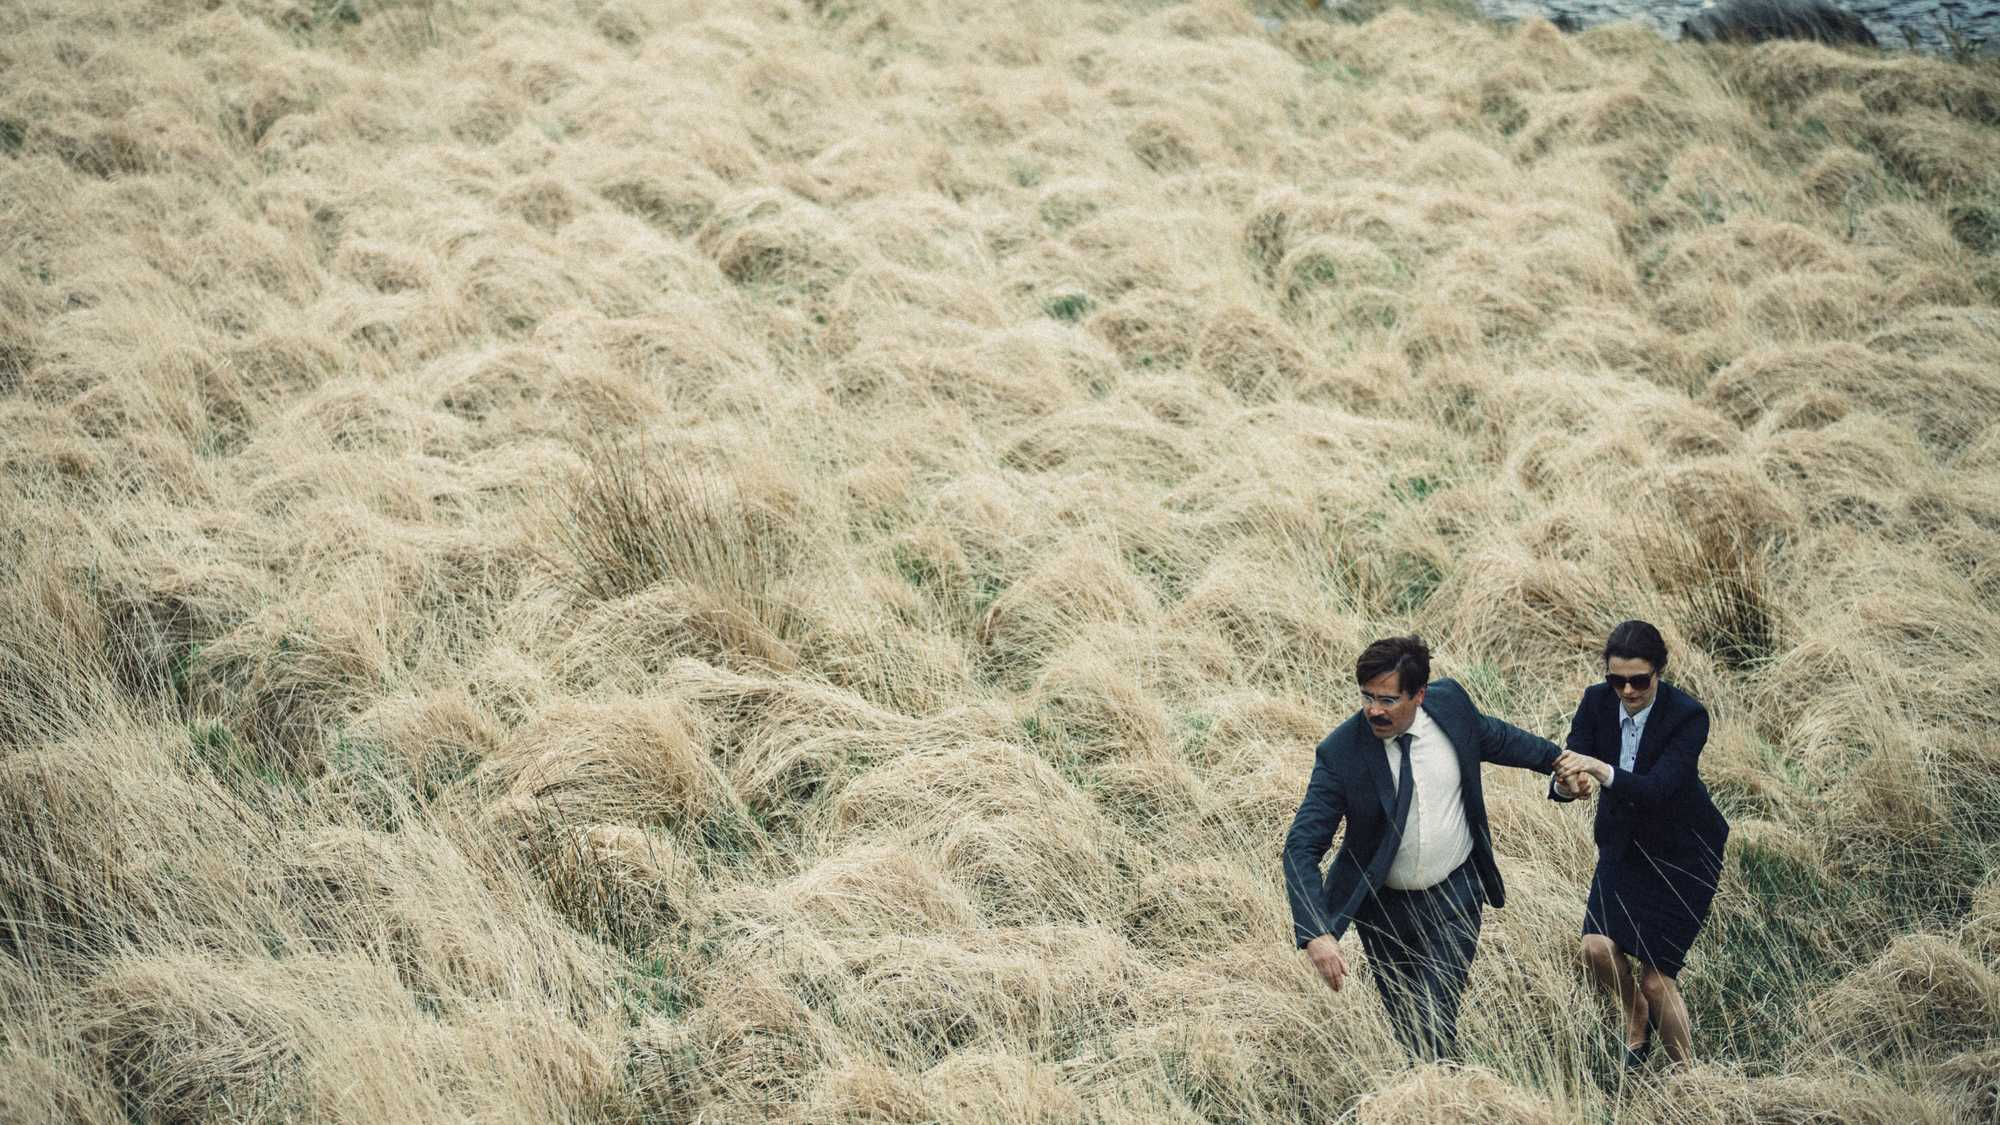 The Lobster (image 2)